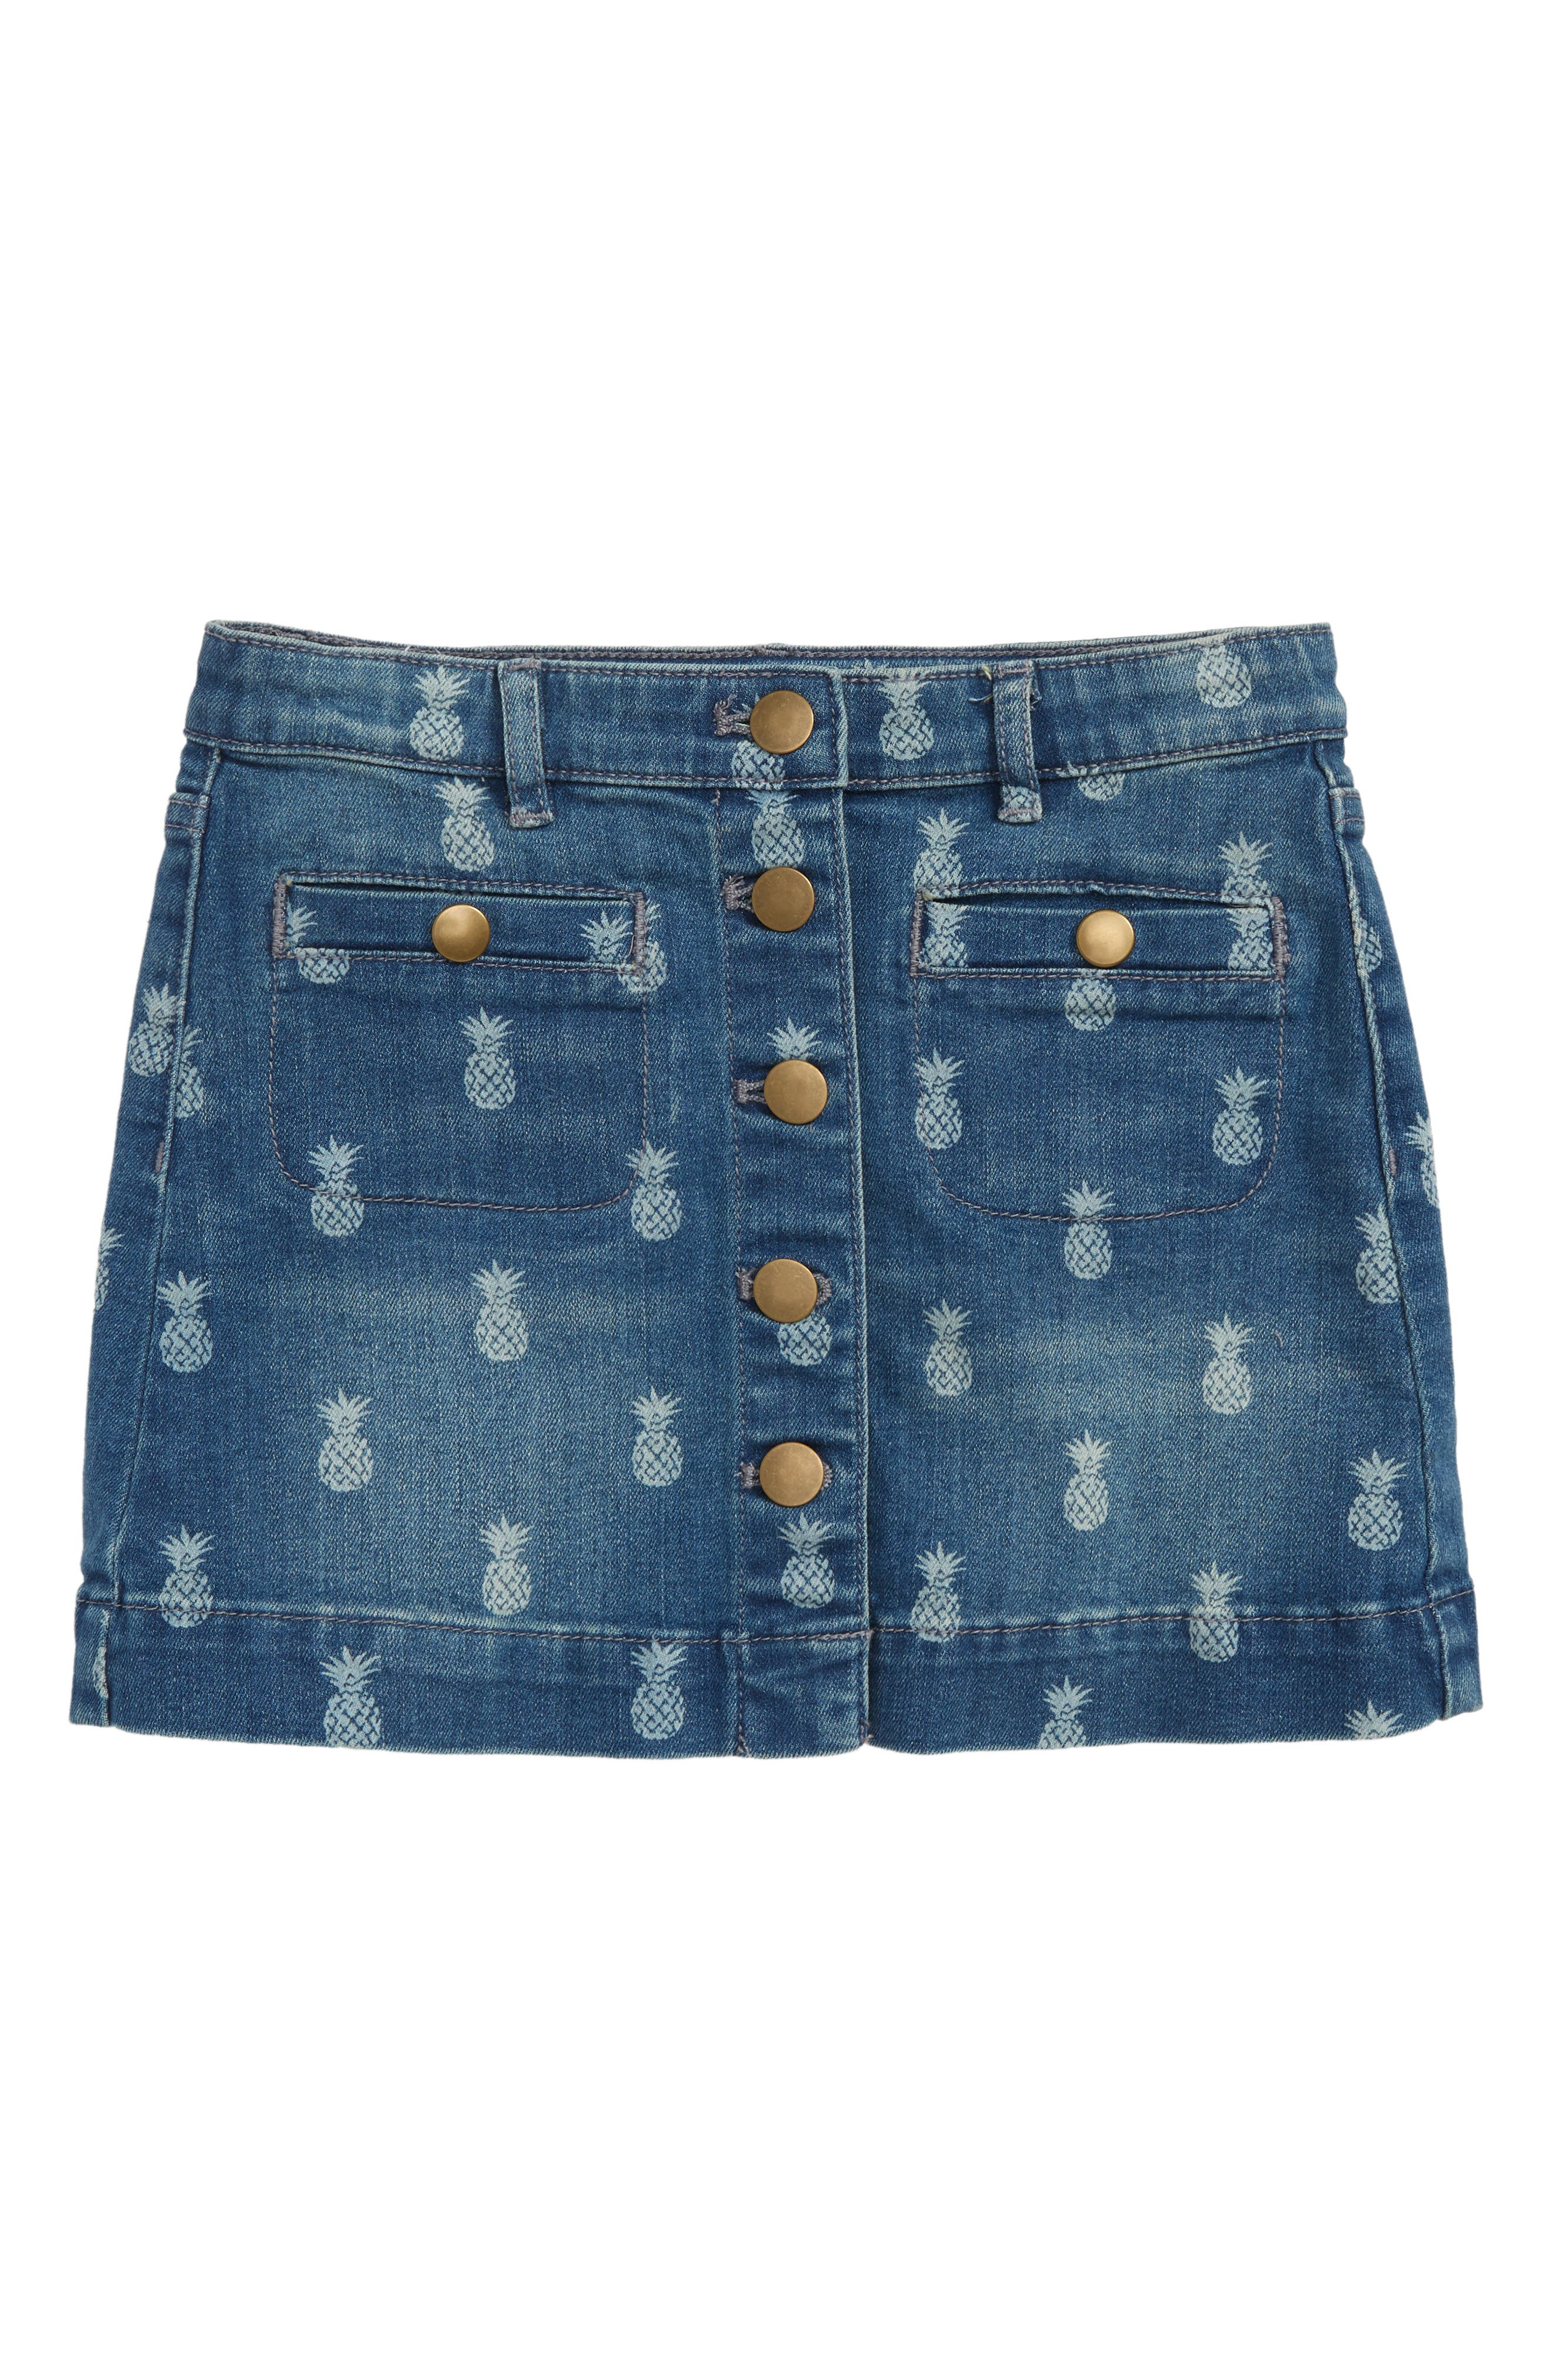 Pineapple Print Denim Skirt,                             Main thumbnail 1, color,                             400